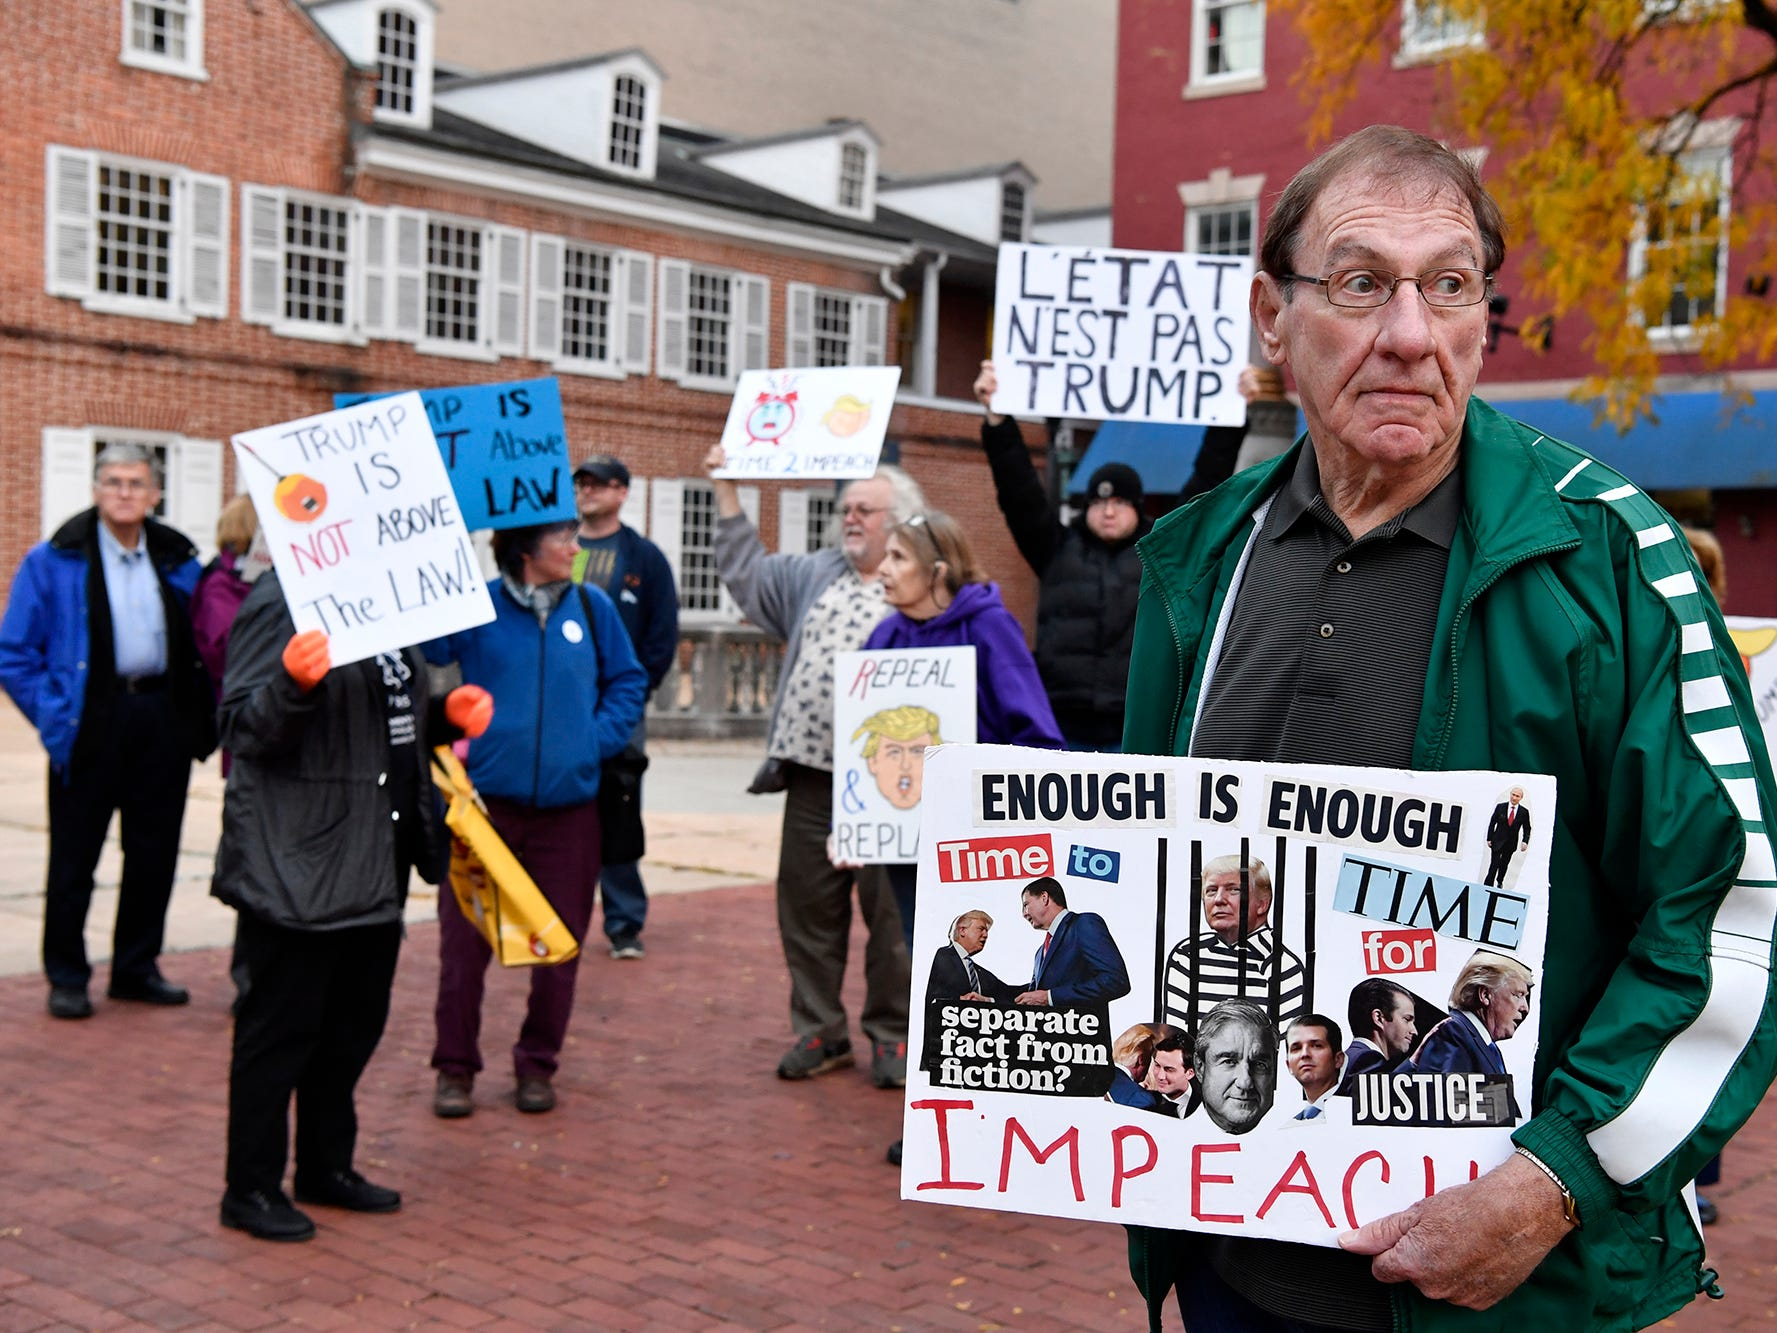 Donald Harbaugh of York New Salem, right, joins a group of about 50 people in protest on Continental Square in York following the forced resignation of Attorney General Jeff Sessions, Thursday, November 7, 2018. The event was sponsored by Indivisible York.